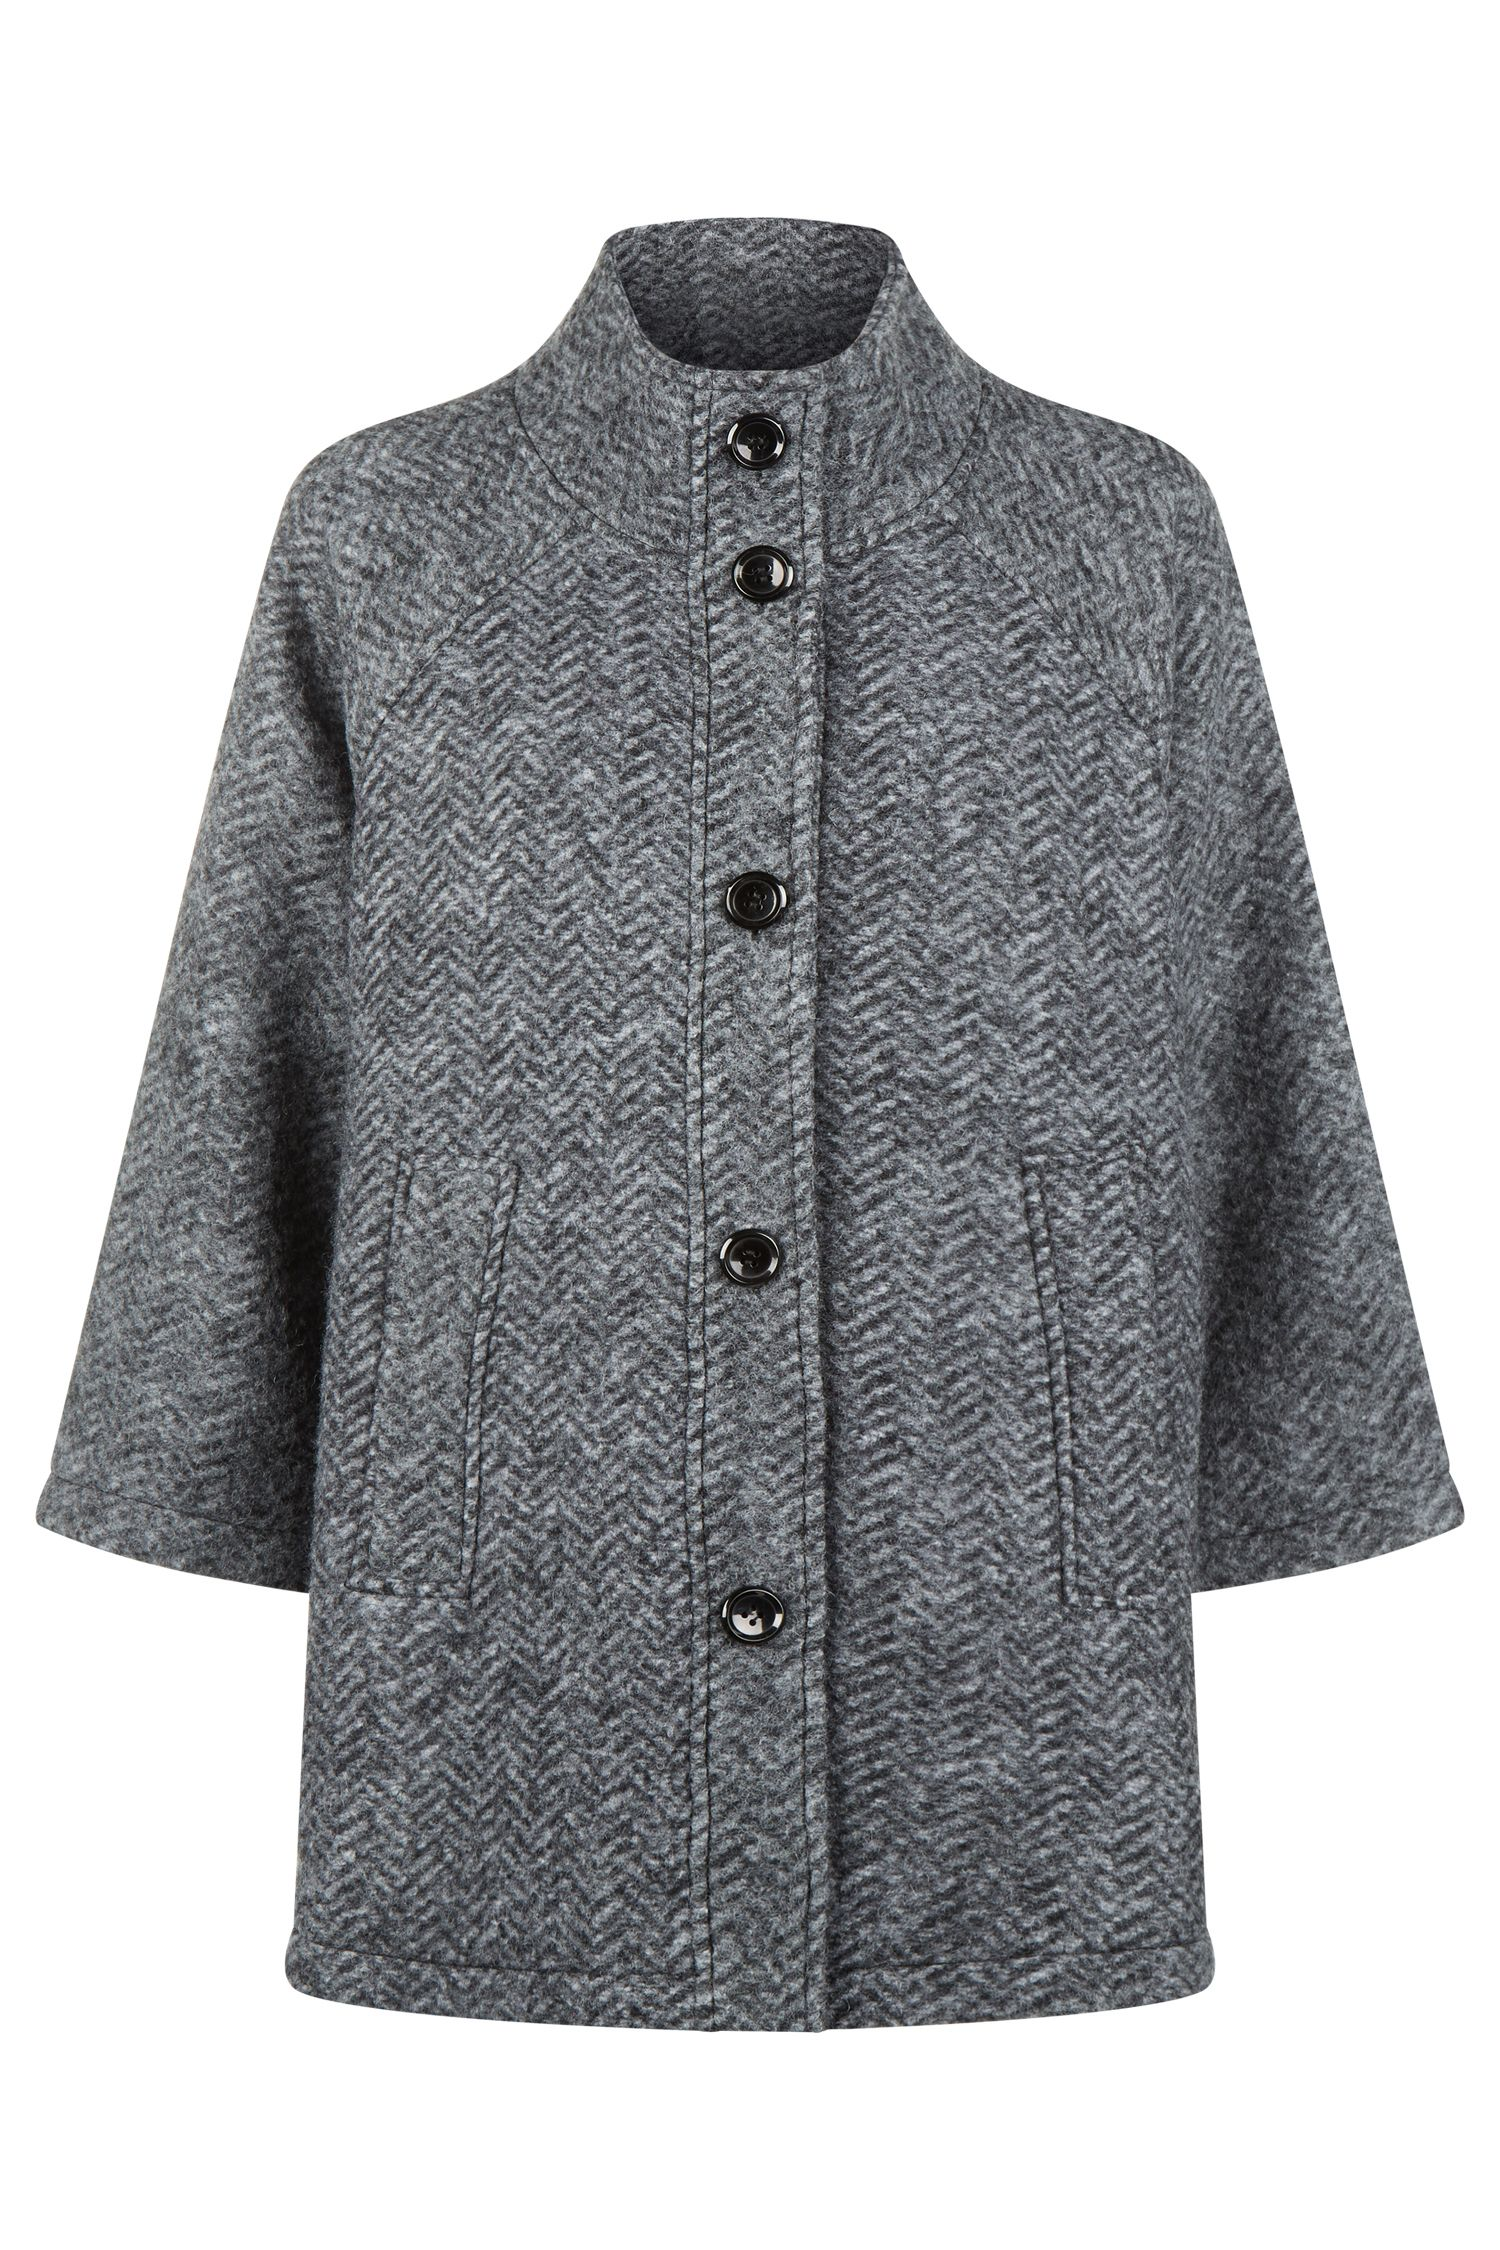 Fenn Wright Manson Satellite Coat, Grey